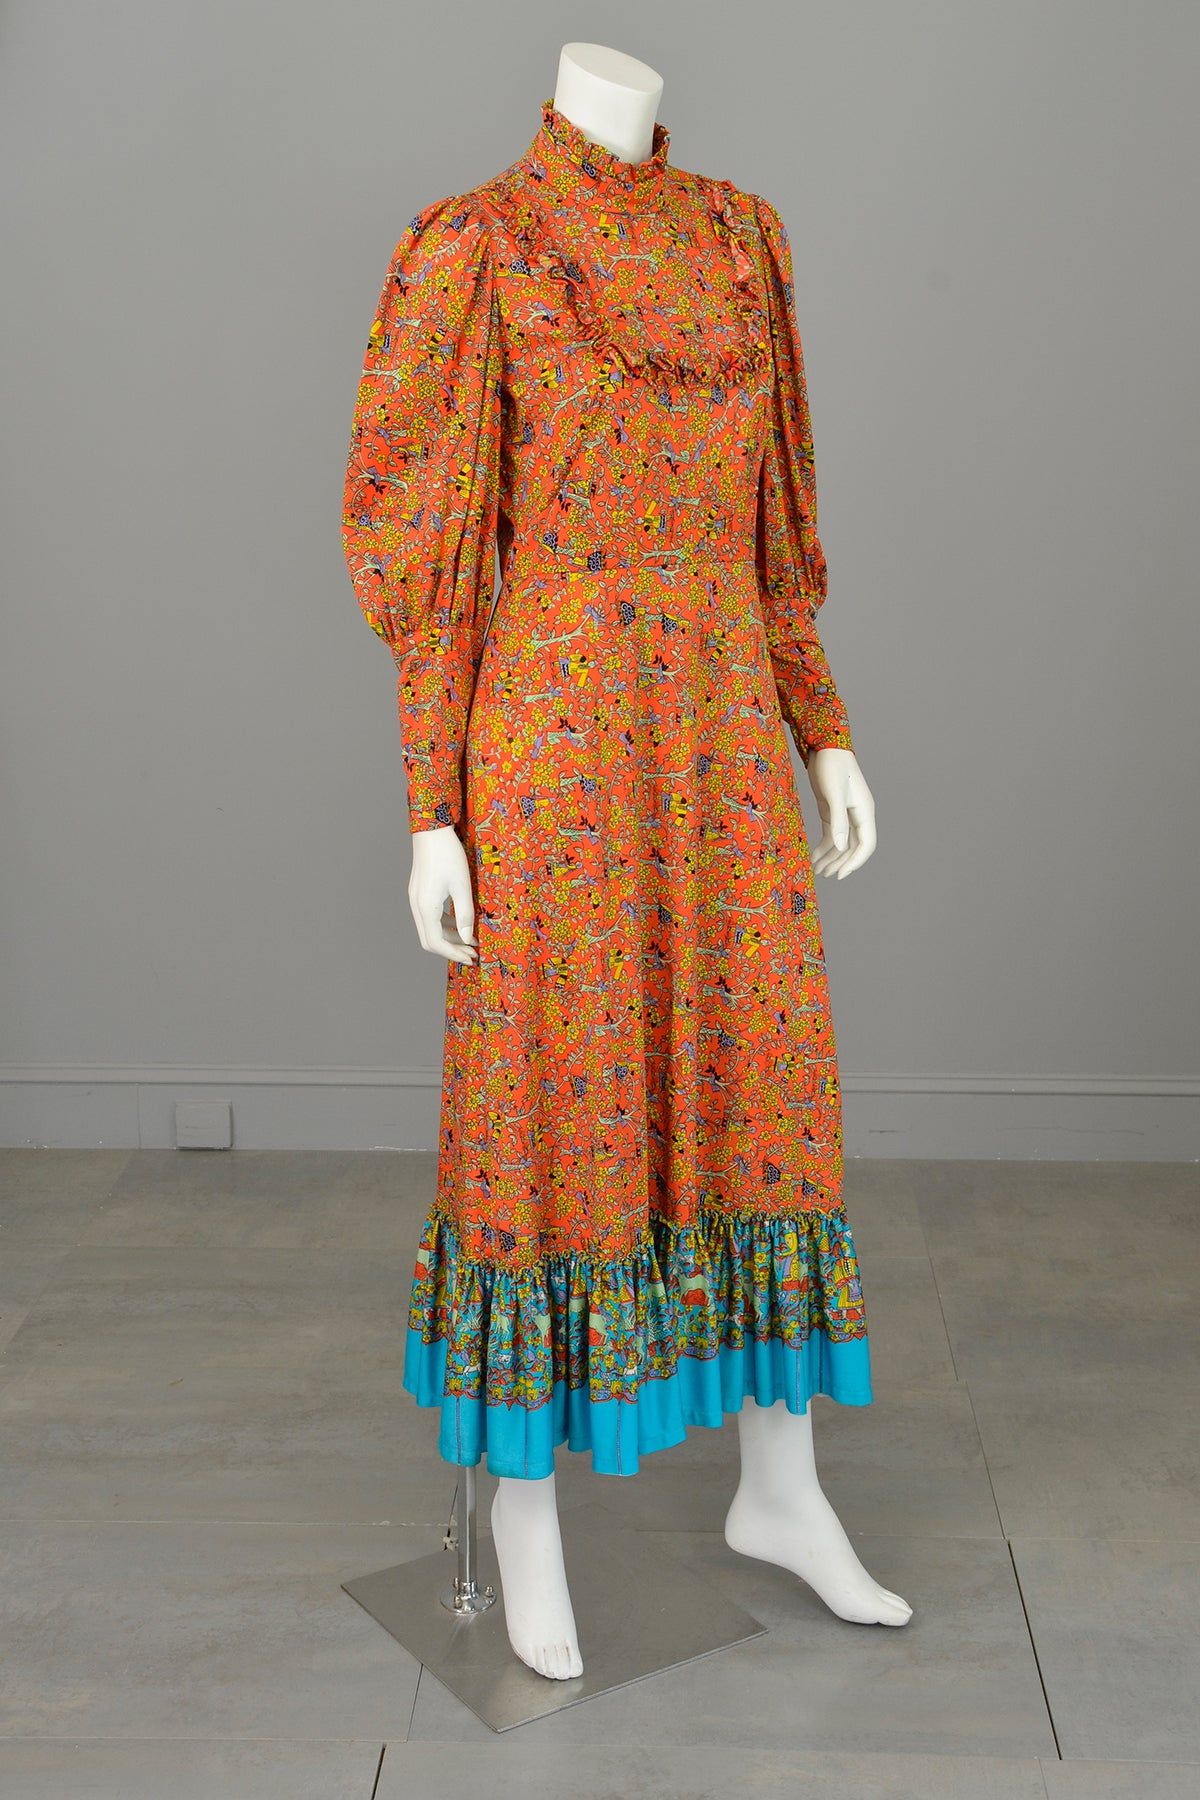 1970s Novelty Folk Print Vintage Folklore Peasant Prairie Dress w Mutton Sleeves and Ruffles